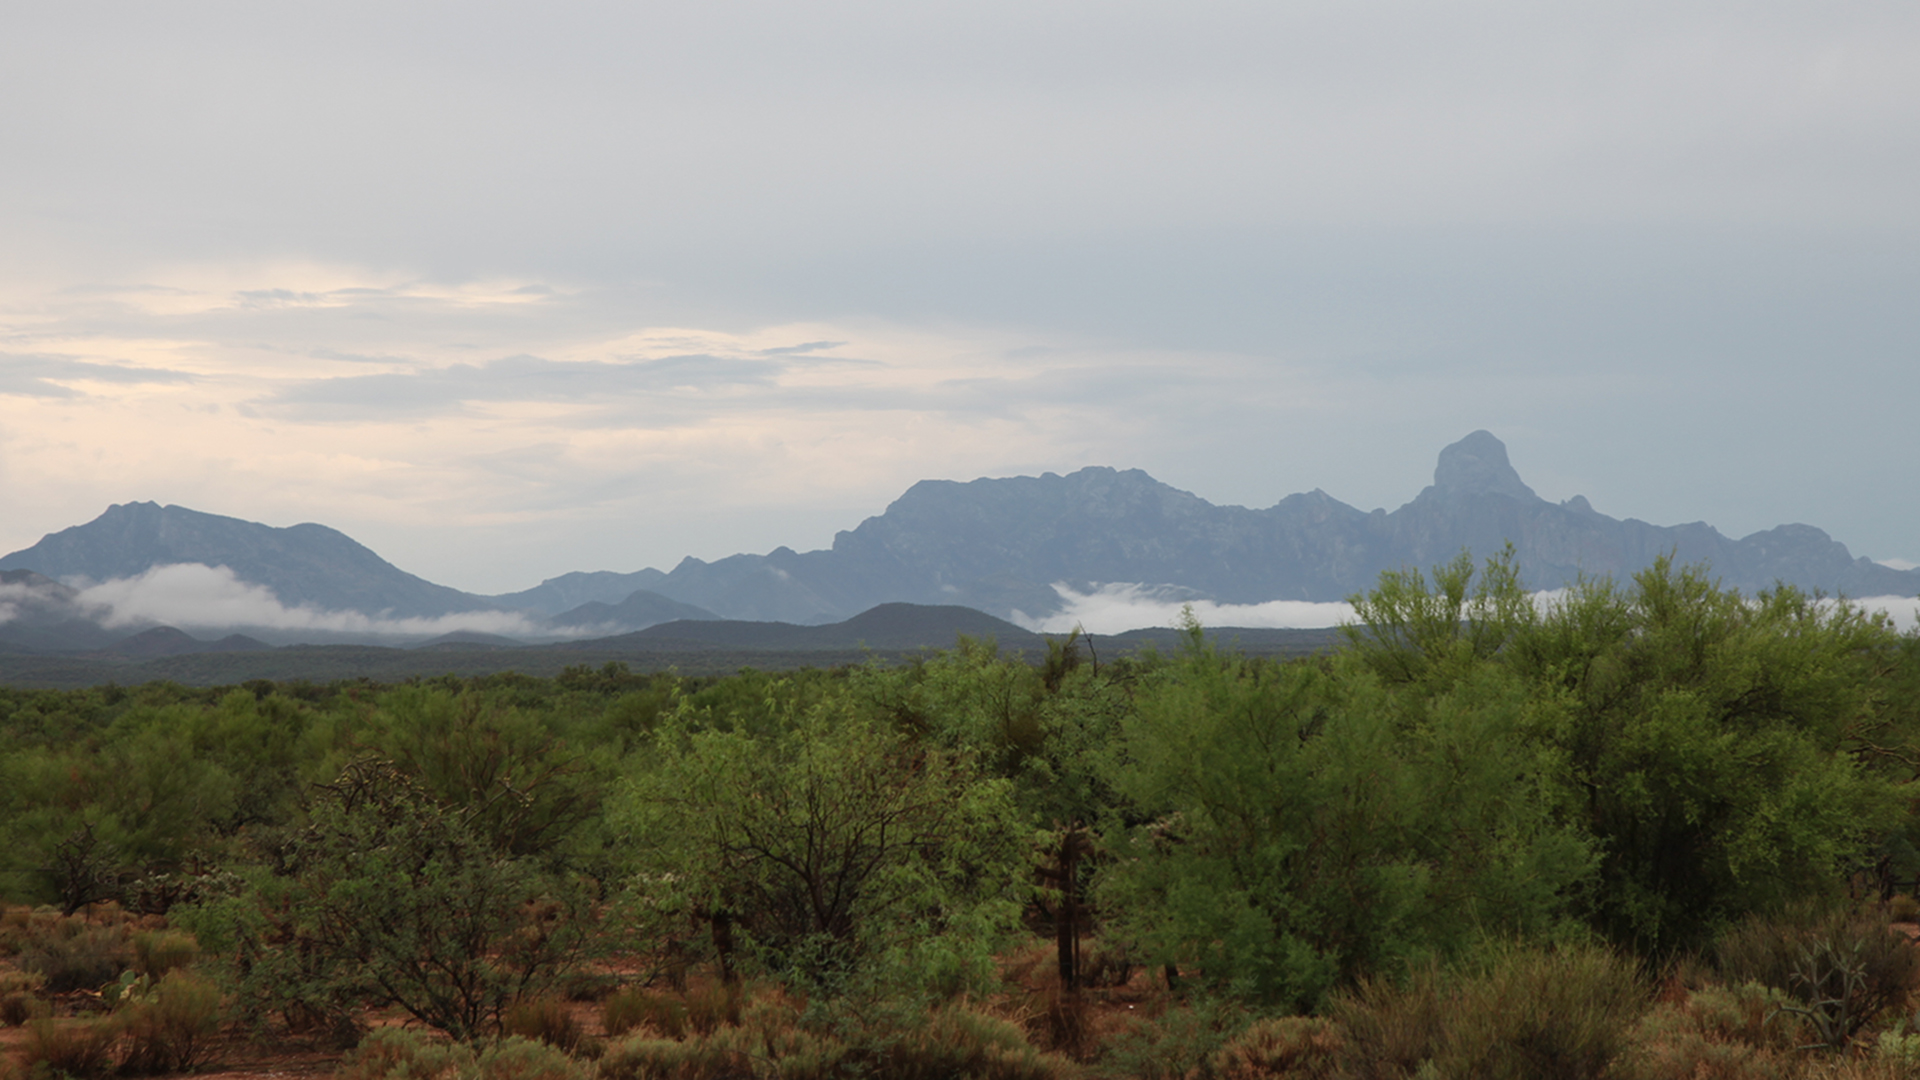 Landscape near the Tohono O'odham Community College in the Tohono O'odham Nation after a morning rain in July 2021.